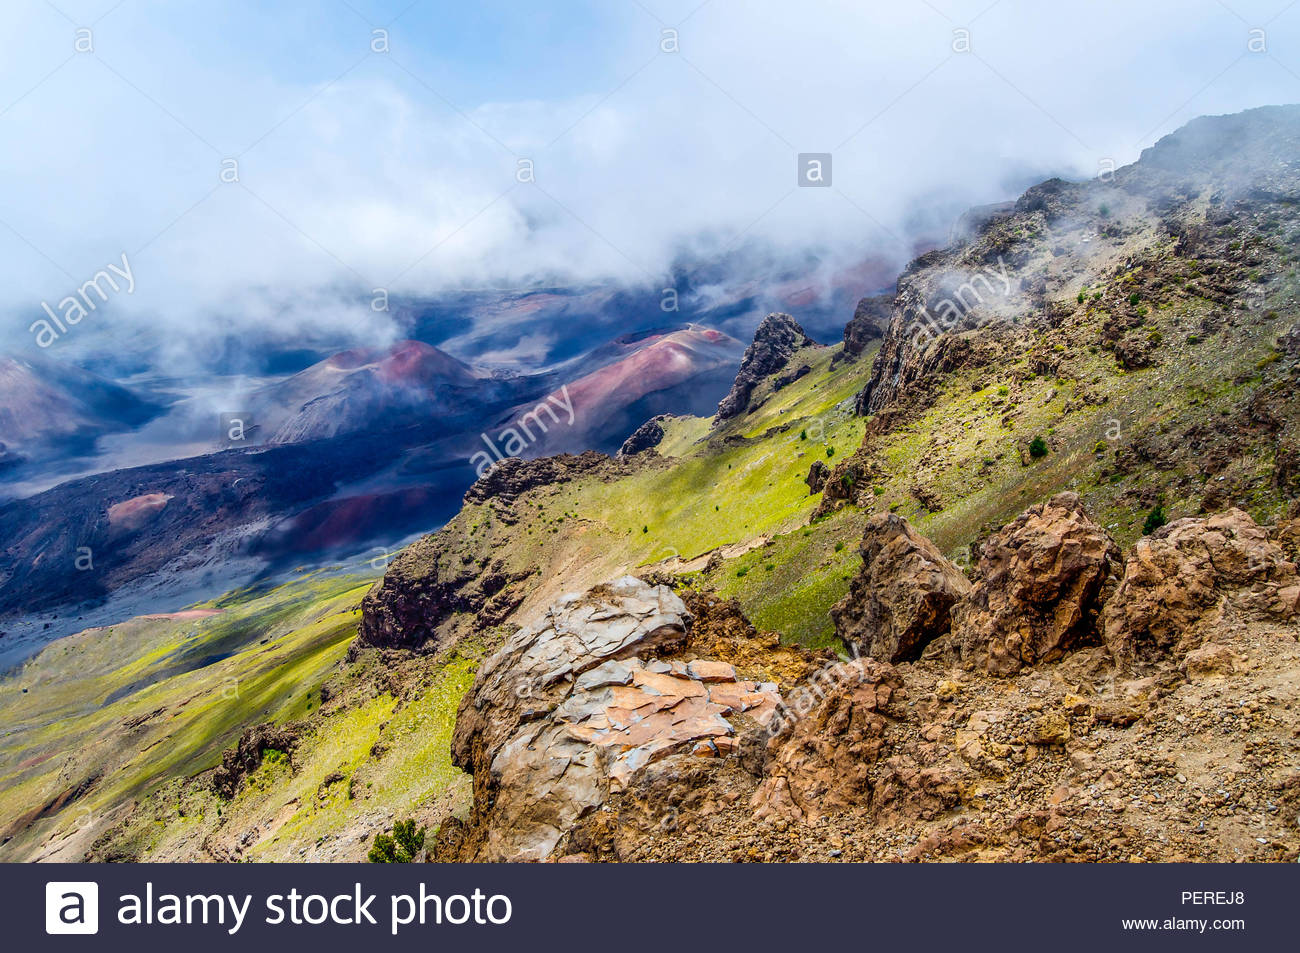 Low Clouds Hang Over Just Below the Crater Rim of Haleakala Volcano on the Island of Maui in Hawaii - Stock Image